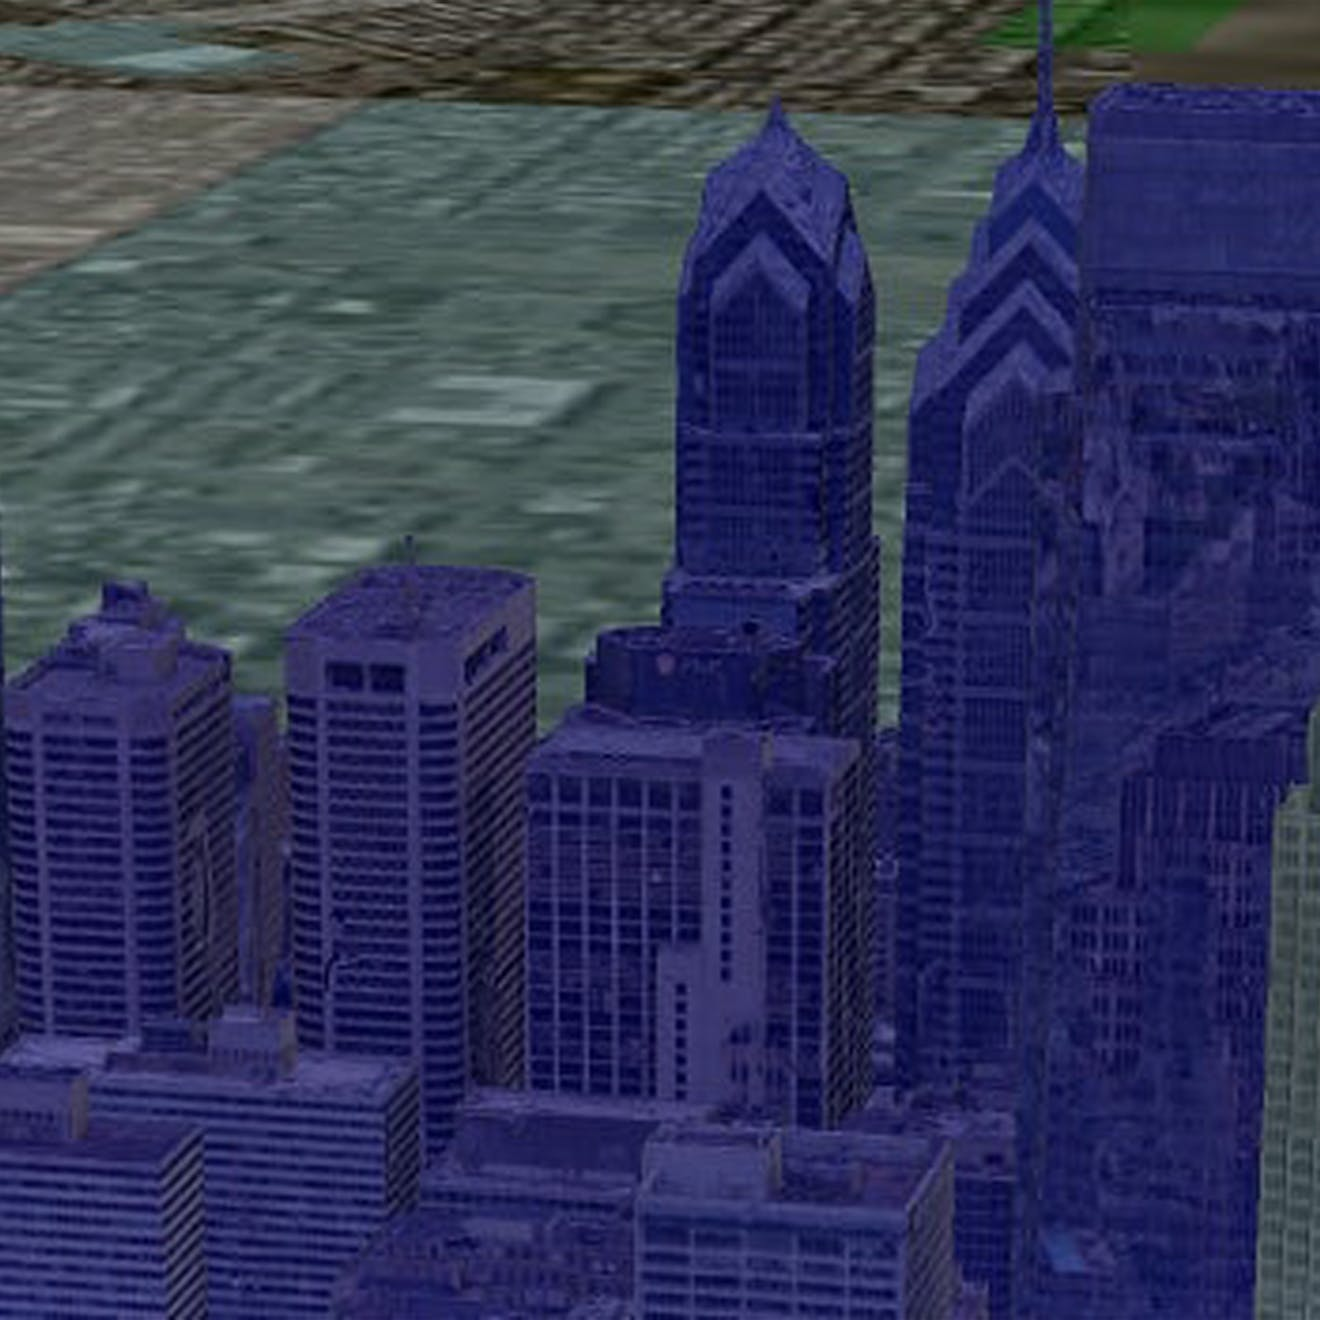 3D tiles heading image showing a 3D model of the Philadelphia skyline with buildings highlighted in purple, gray, and pink